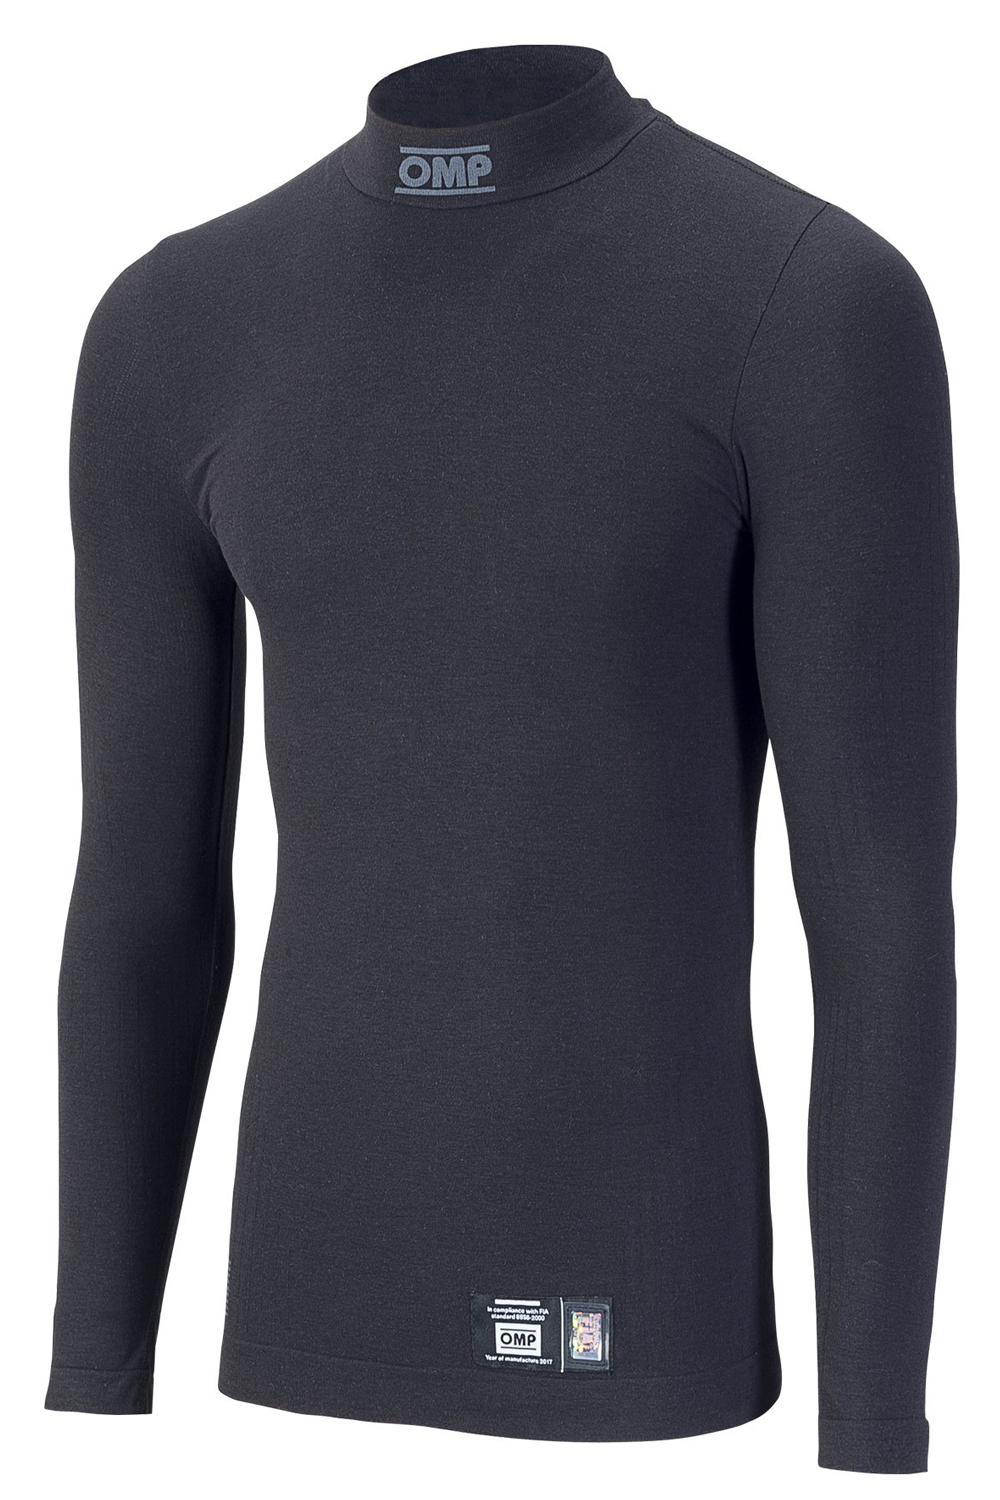 Omp Racing, Inc. TECNICA Underwear Top Black X Small To Small